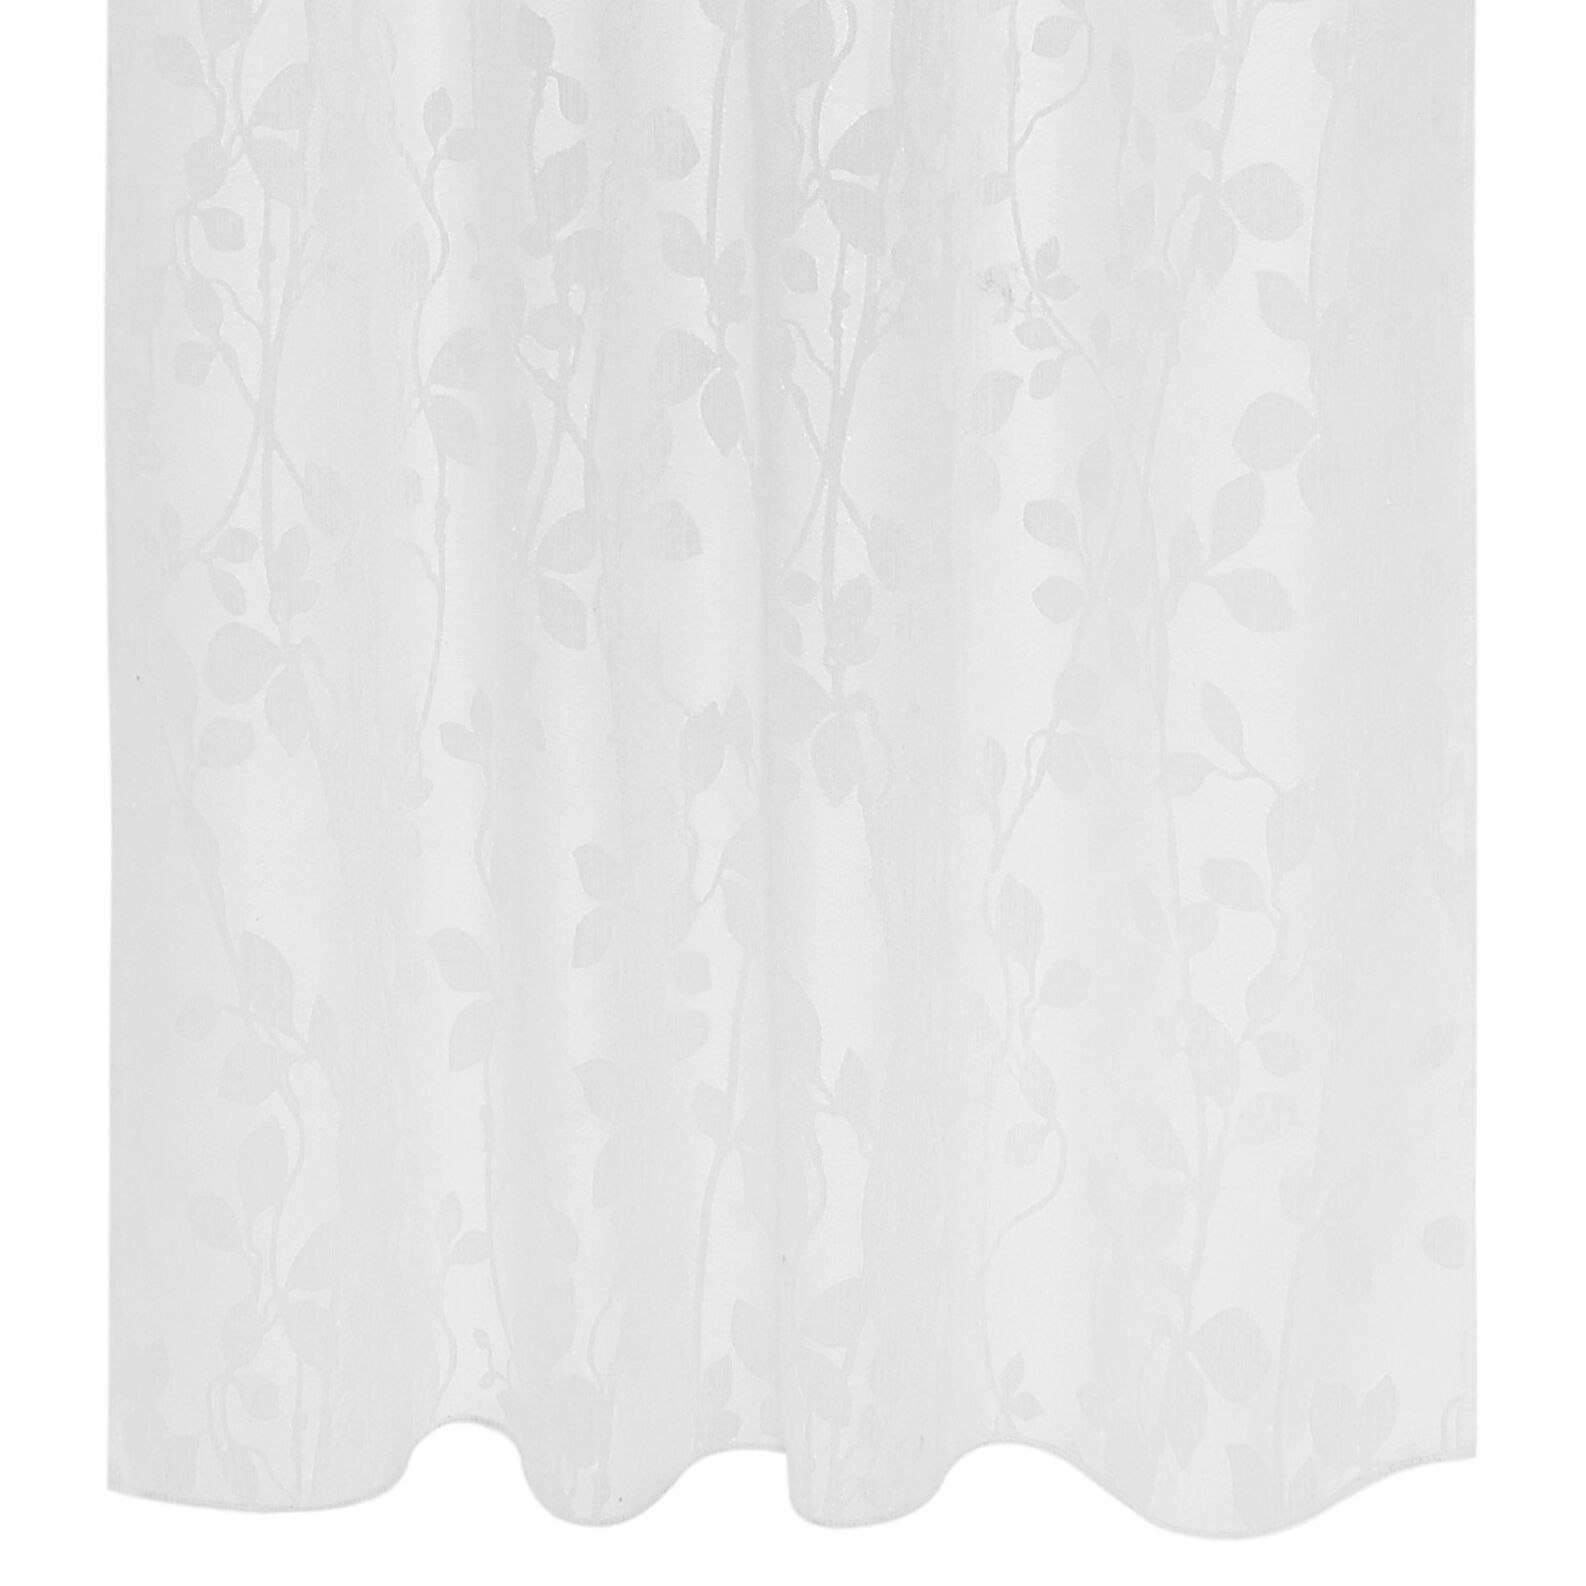 Floral devorè curtain with hidden loops